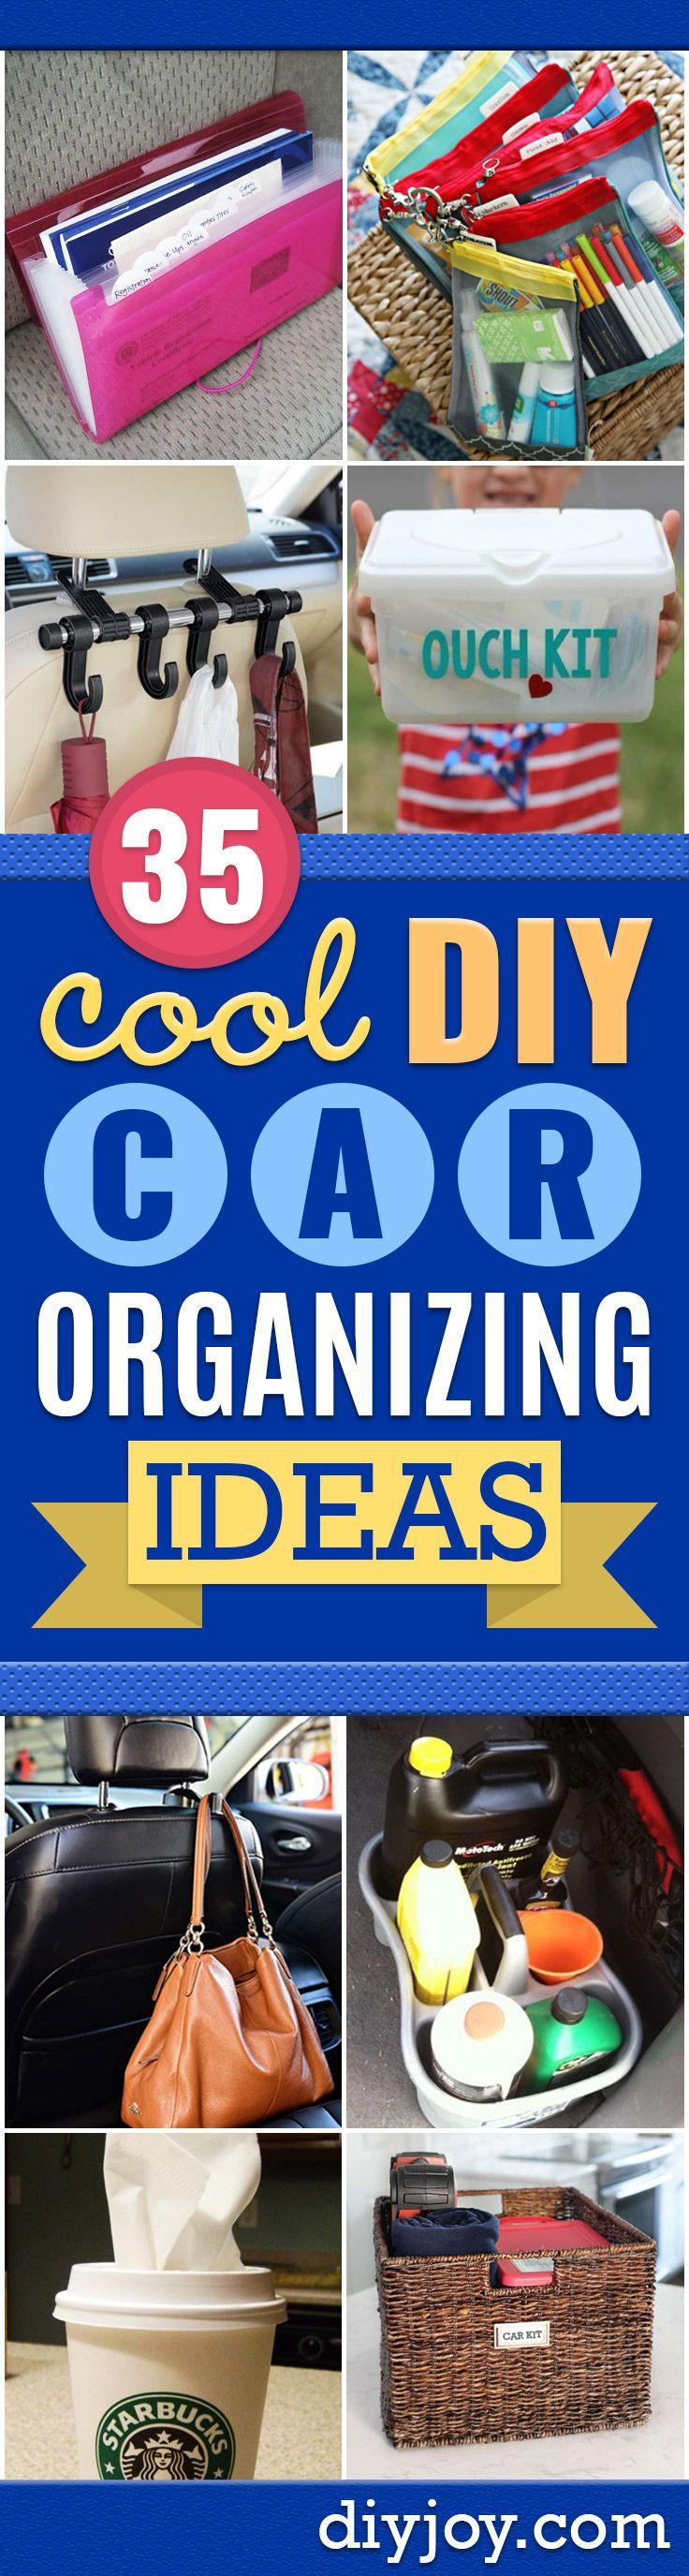 35 genius diy car organizing ideas pinterest organize car 35 genius diy car organizing ideas pinterest organize car organization ideas and dollar stores solutioingenieria Choice Image